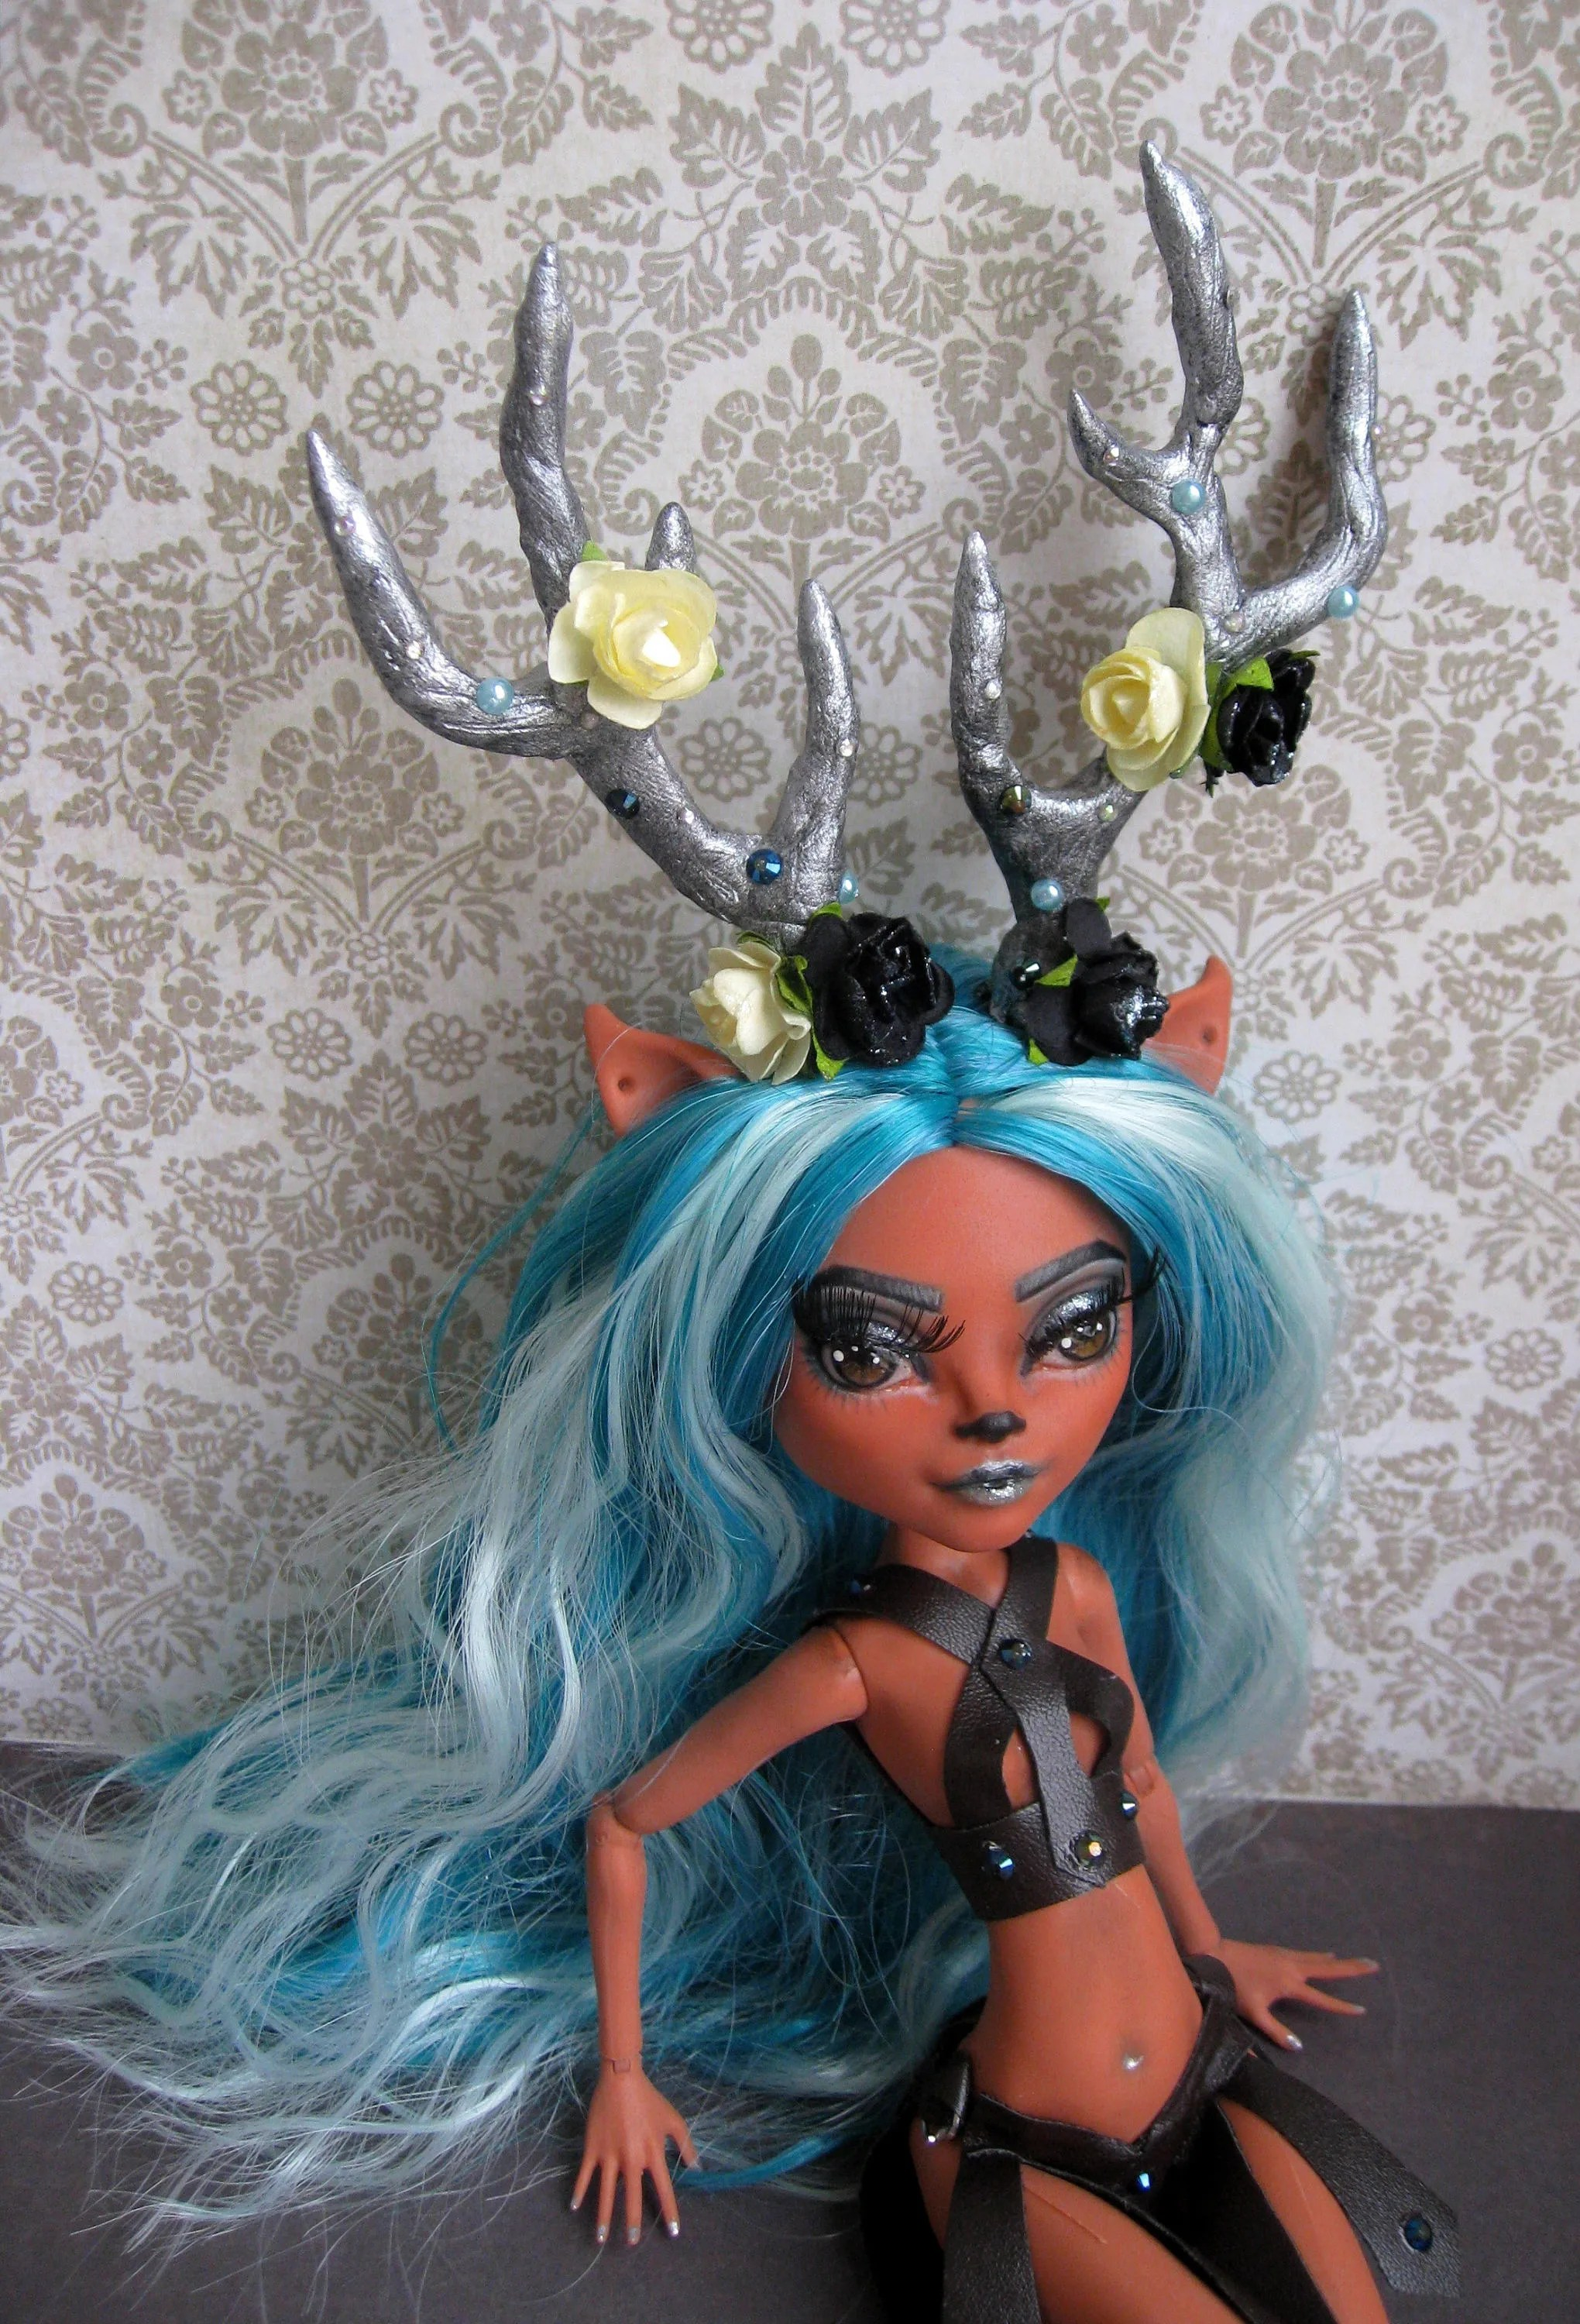 Libros Monster High Ooak Unique Repaint Custom Monster High Doll Issy Dawndancer The Wild Forest Nymph Horn Full Outfit Reroot All4doll By Olli Gagarina